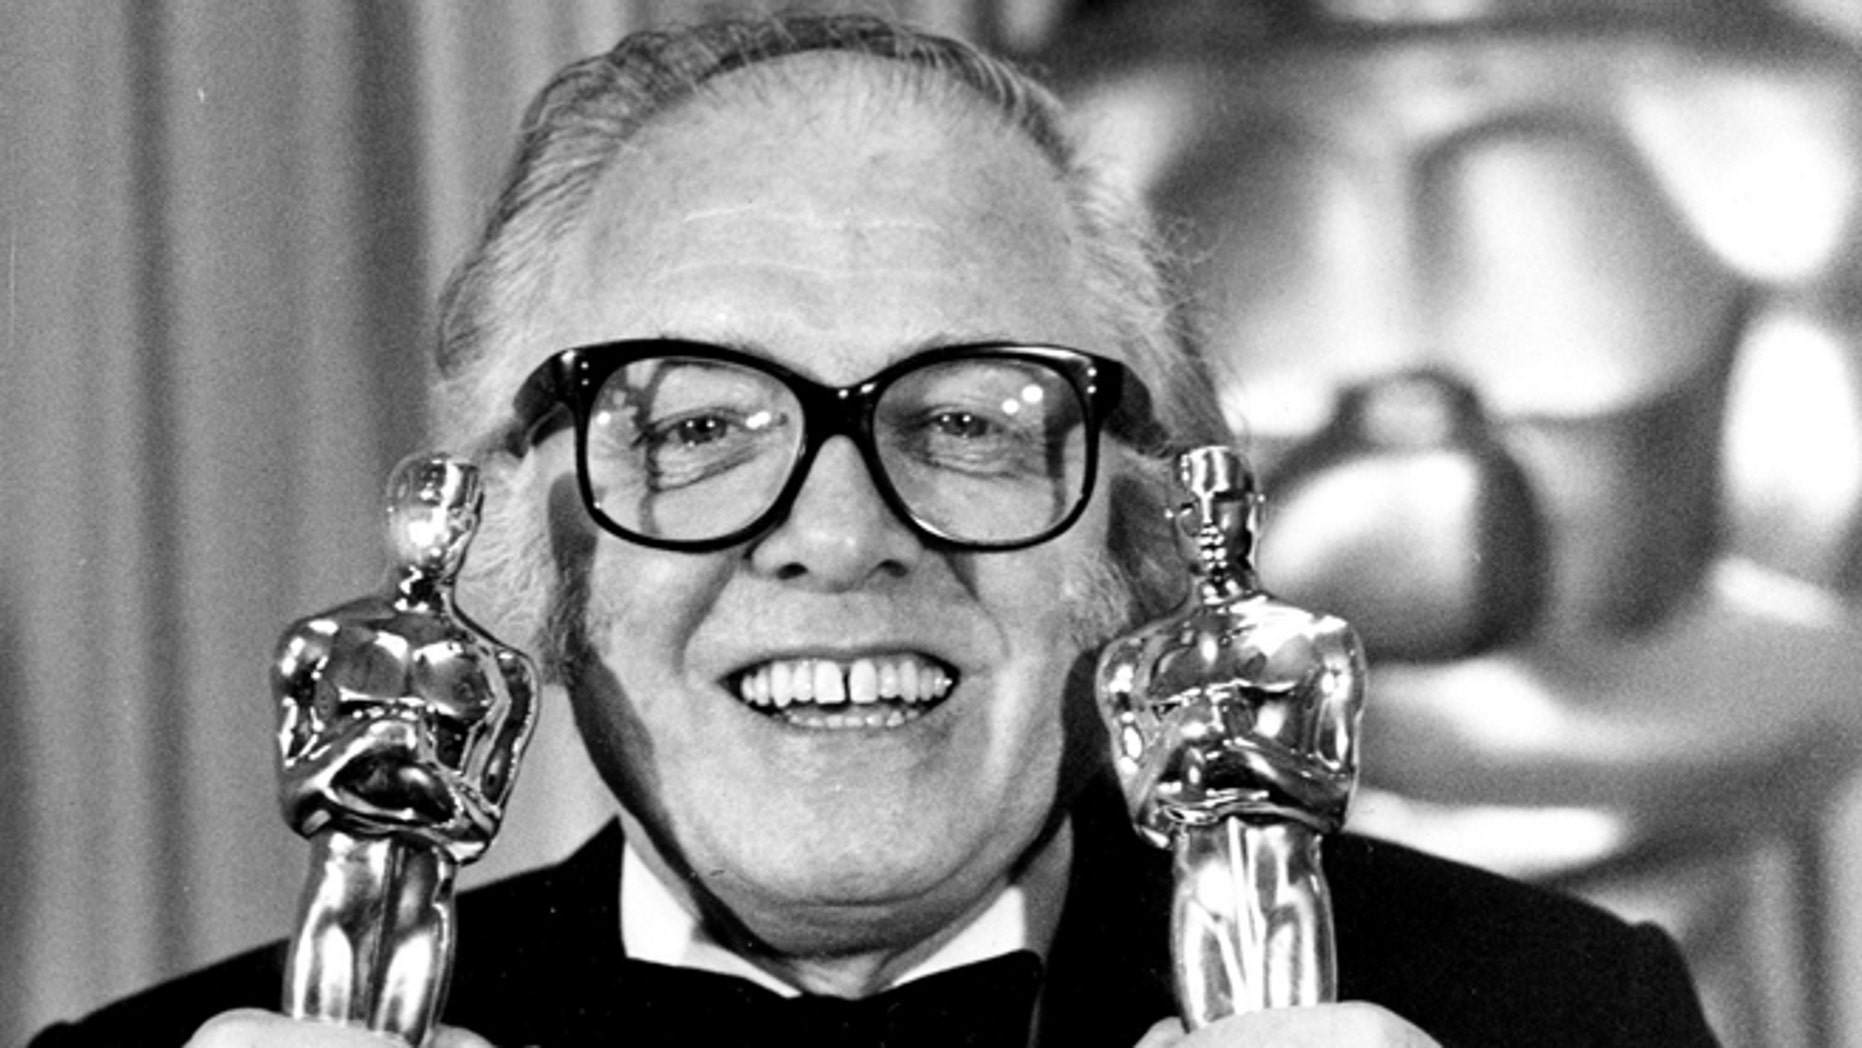 """In this Monday, April 11, 1983 file photo, British actor and director Richard Attenborough holds his two Oscars for his epic movie """"Gandhi"""" at the 55th annual Academy Awards in Los Angeles, Ca. Acclaimed actor and Oscar-winning director Richard Attenborough, whose film career on both sides of the camera spanned 60 years, died on Sunday, Aug. 24, 2014. He was 90."""